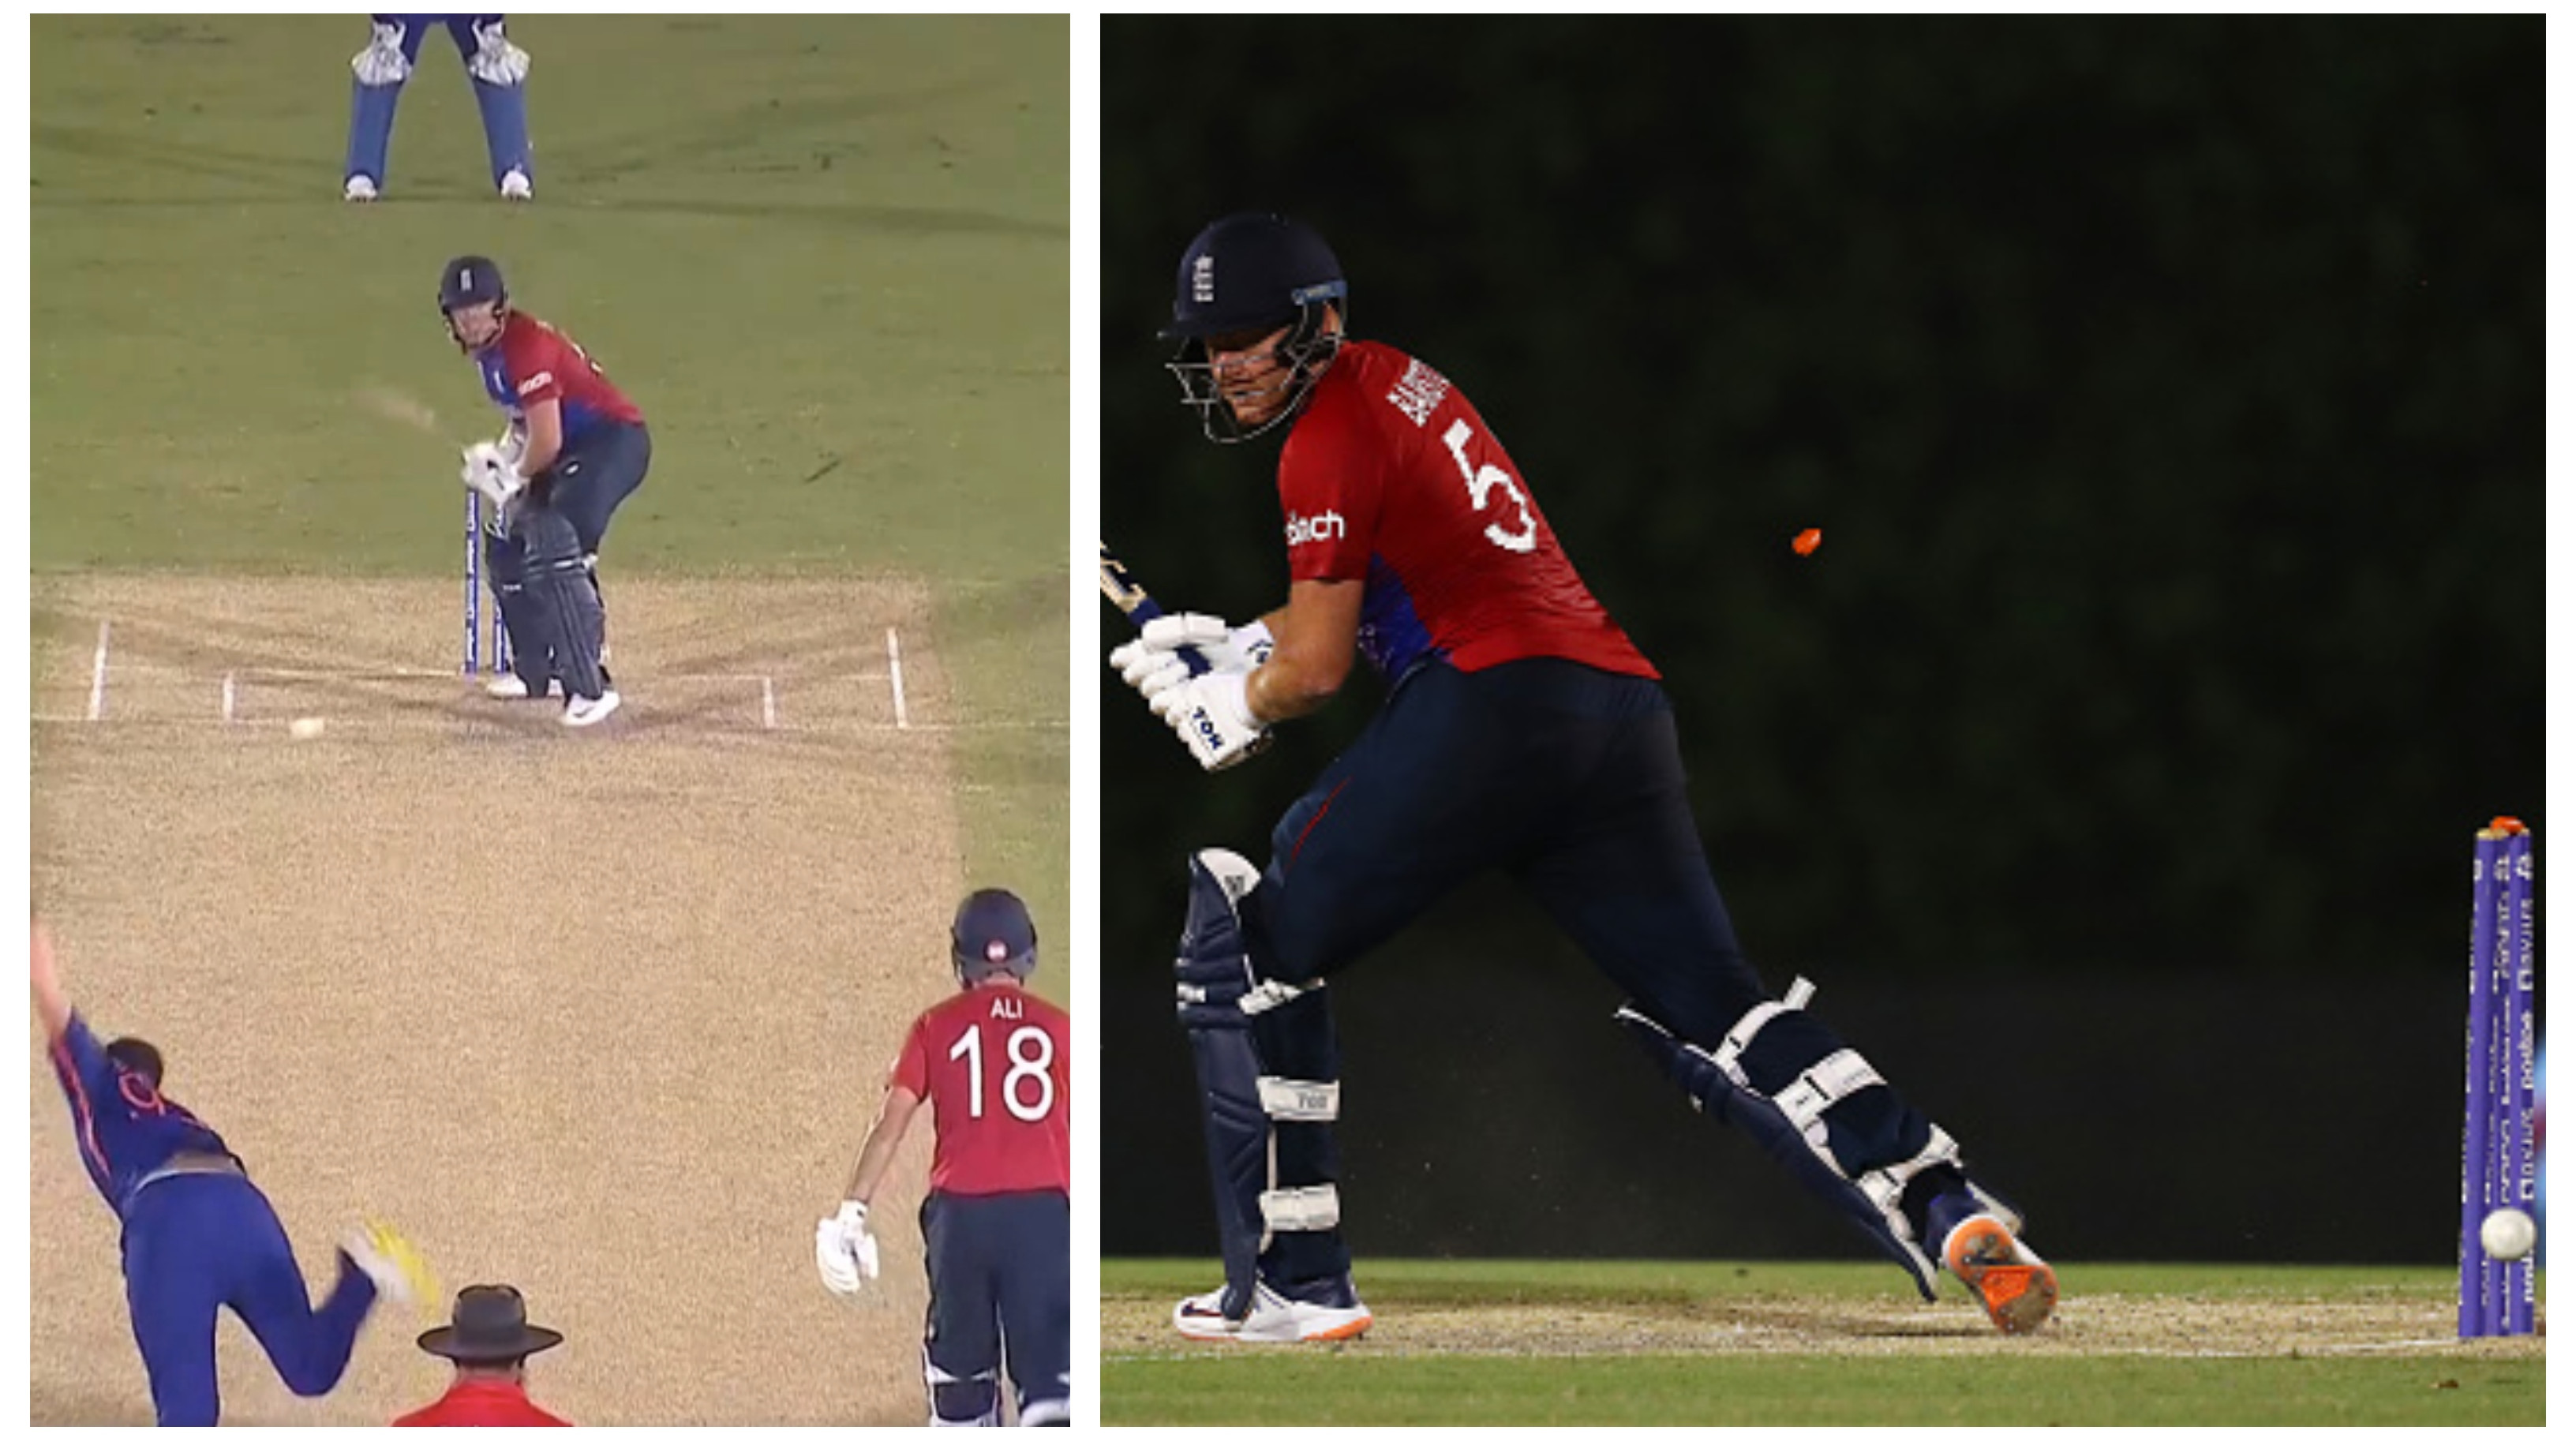 T20 World Cup 2021: WATCH - Bumrah's peach of a yorker to dismiss Bairstow in warm-up match